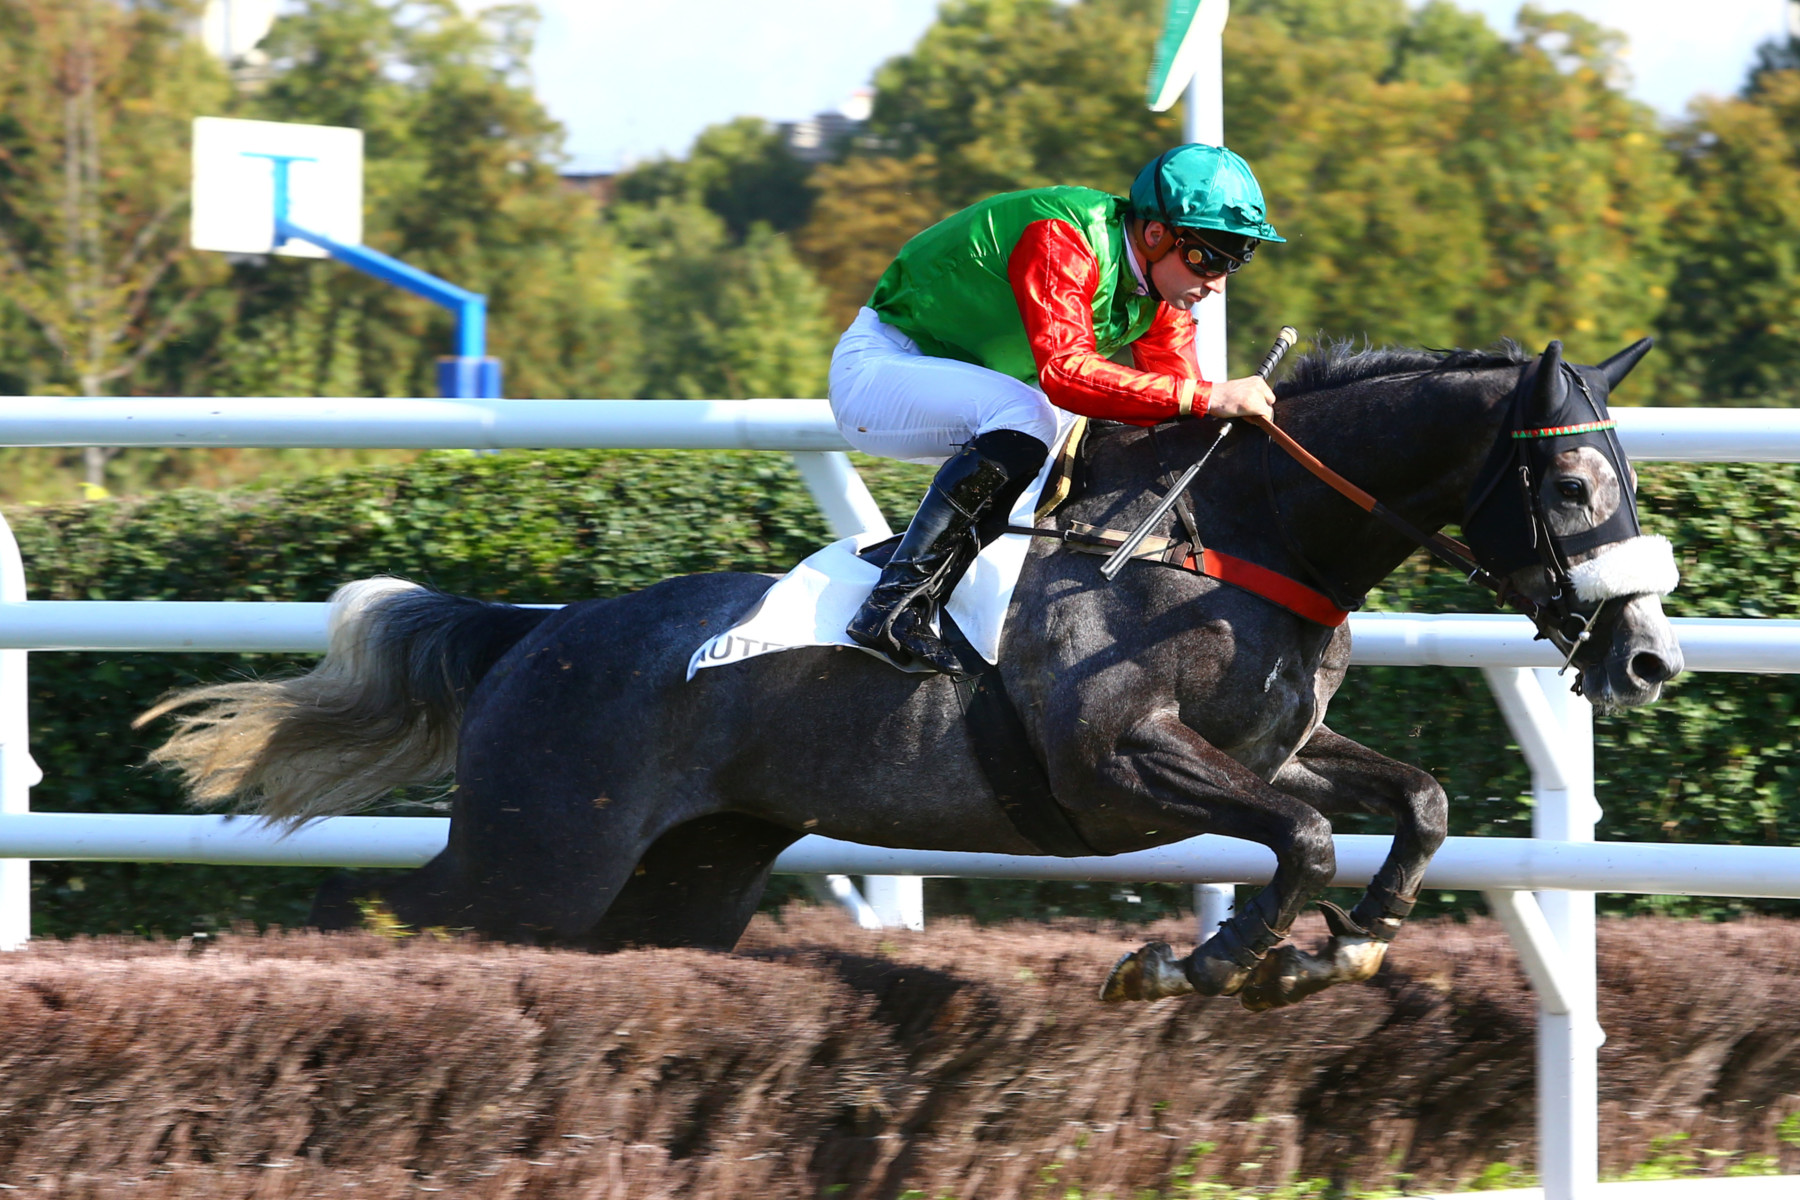 PRIX JEAN BERNADOTTE - Middle poursuit son apprentissage en steeple